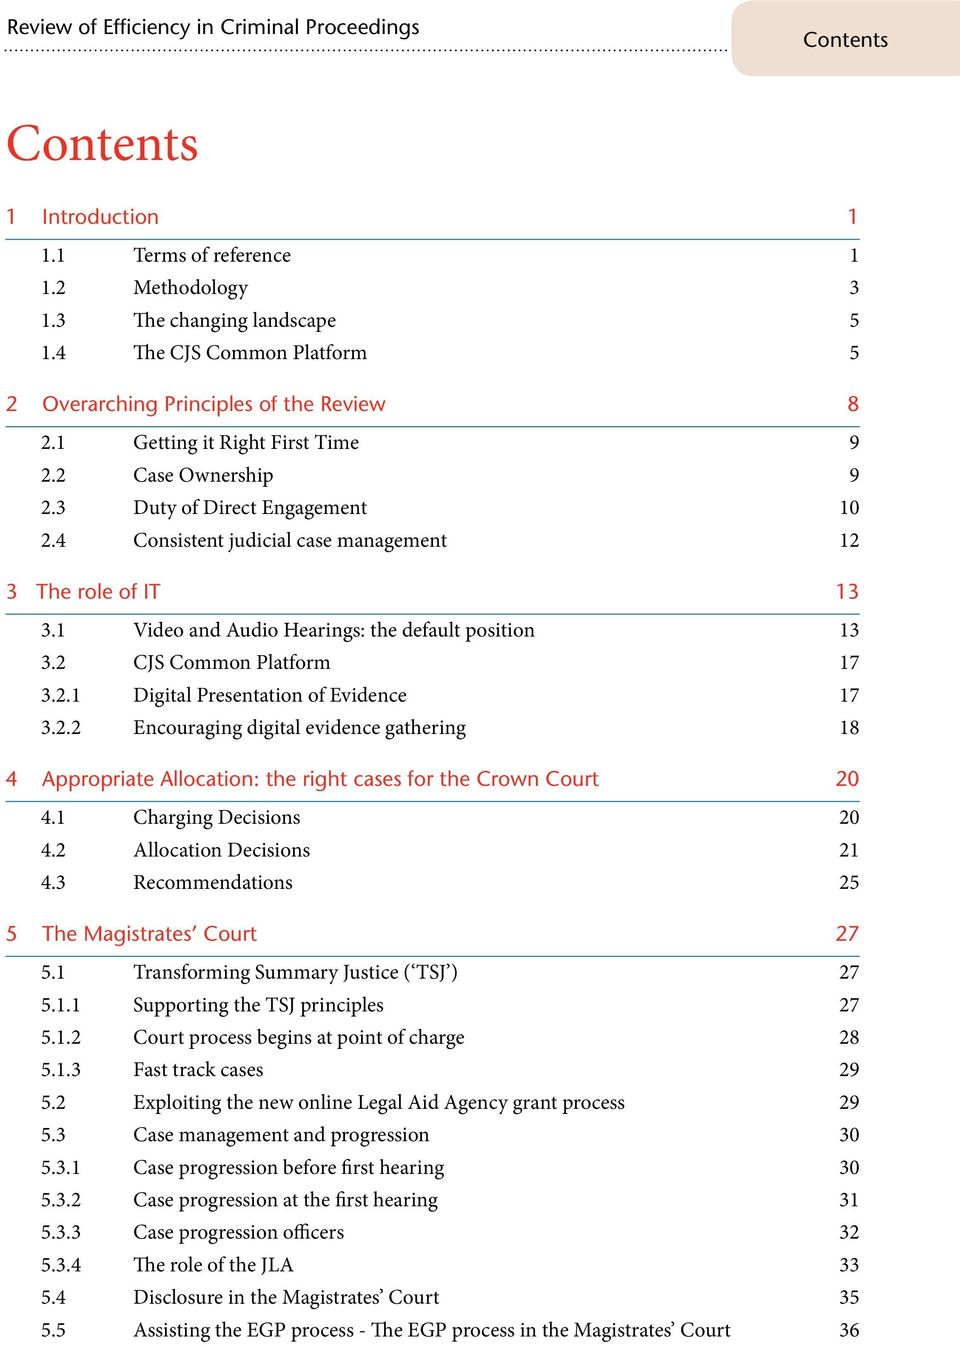 1 Video and Audio Hearings: the default position 13 3.2 CJS Common Platform 17 3.2.1 Digital Presentation of Evidence 17 3.2.2 Encouraging digital evidence gathering 18 4 Appropriate Allocation: the right cases for the Crown Court 20 4.